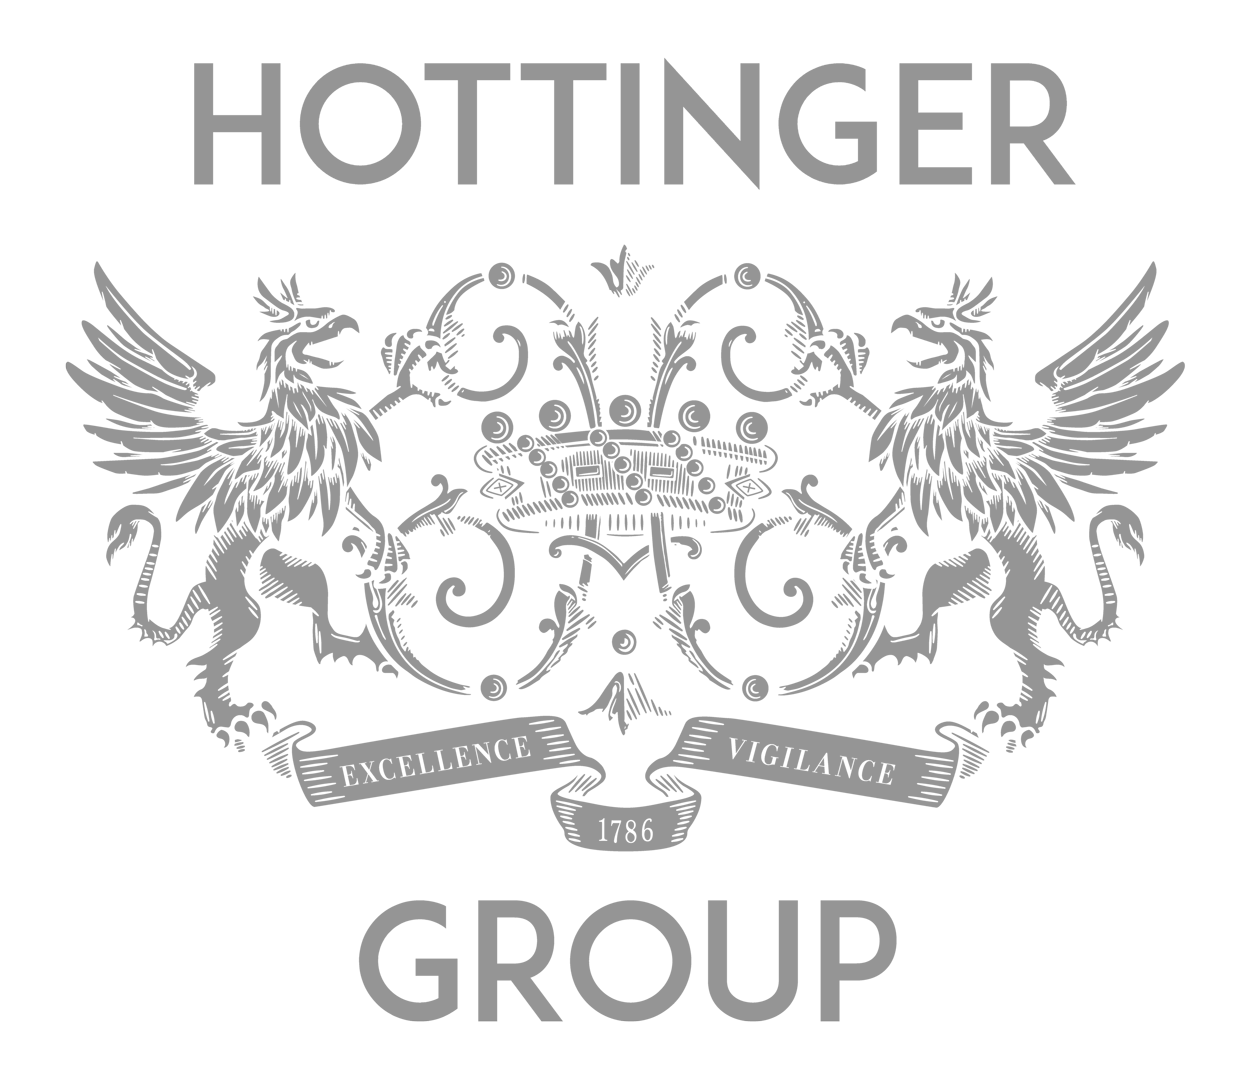 Hottinger Group